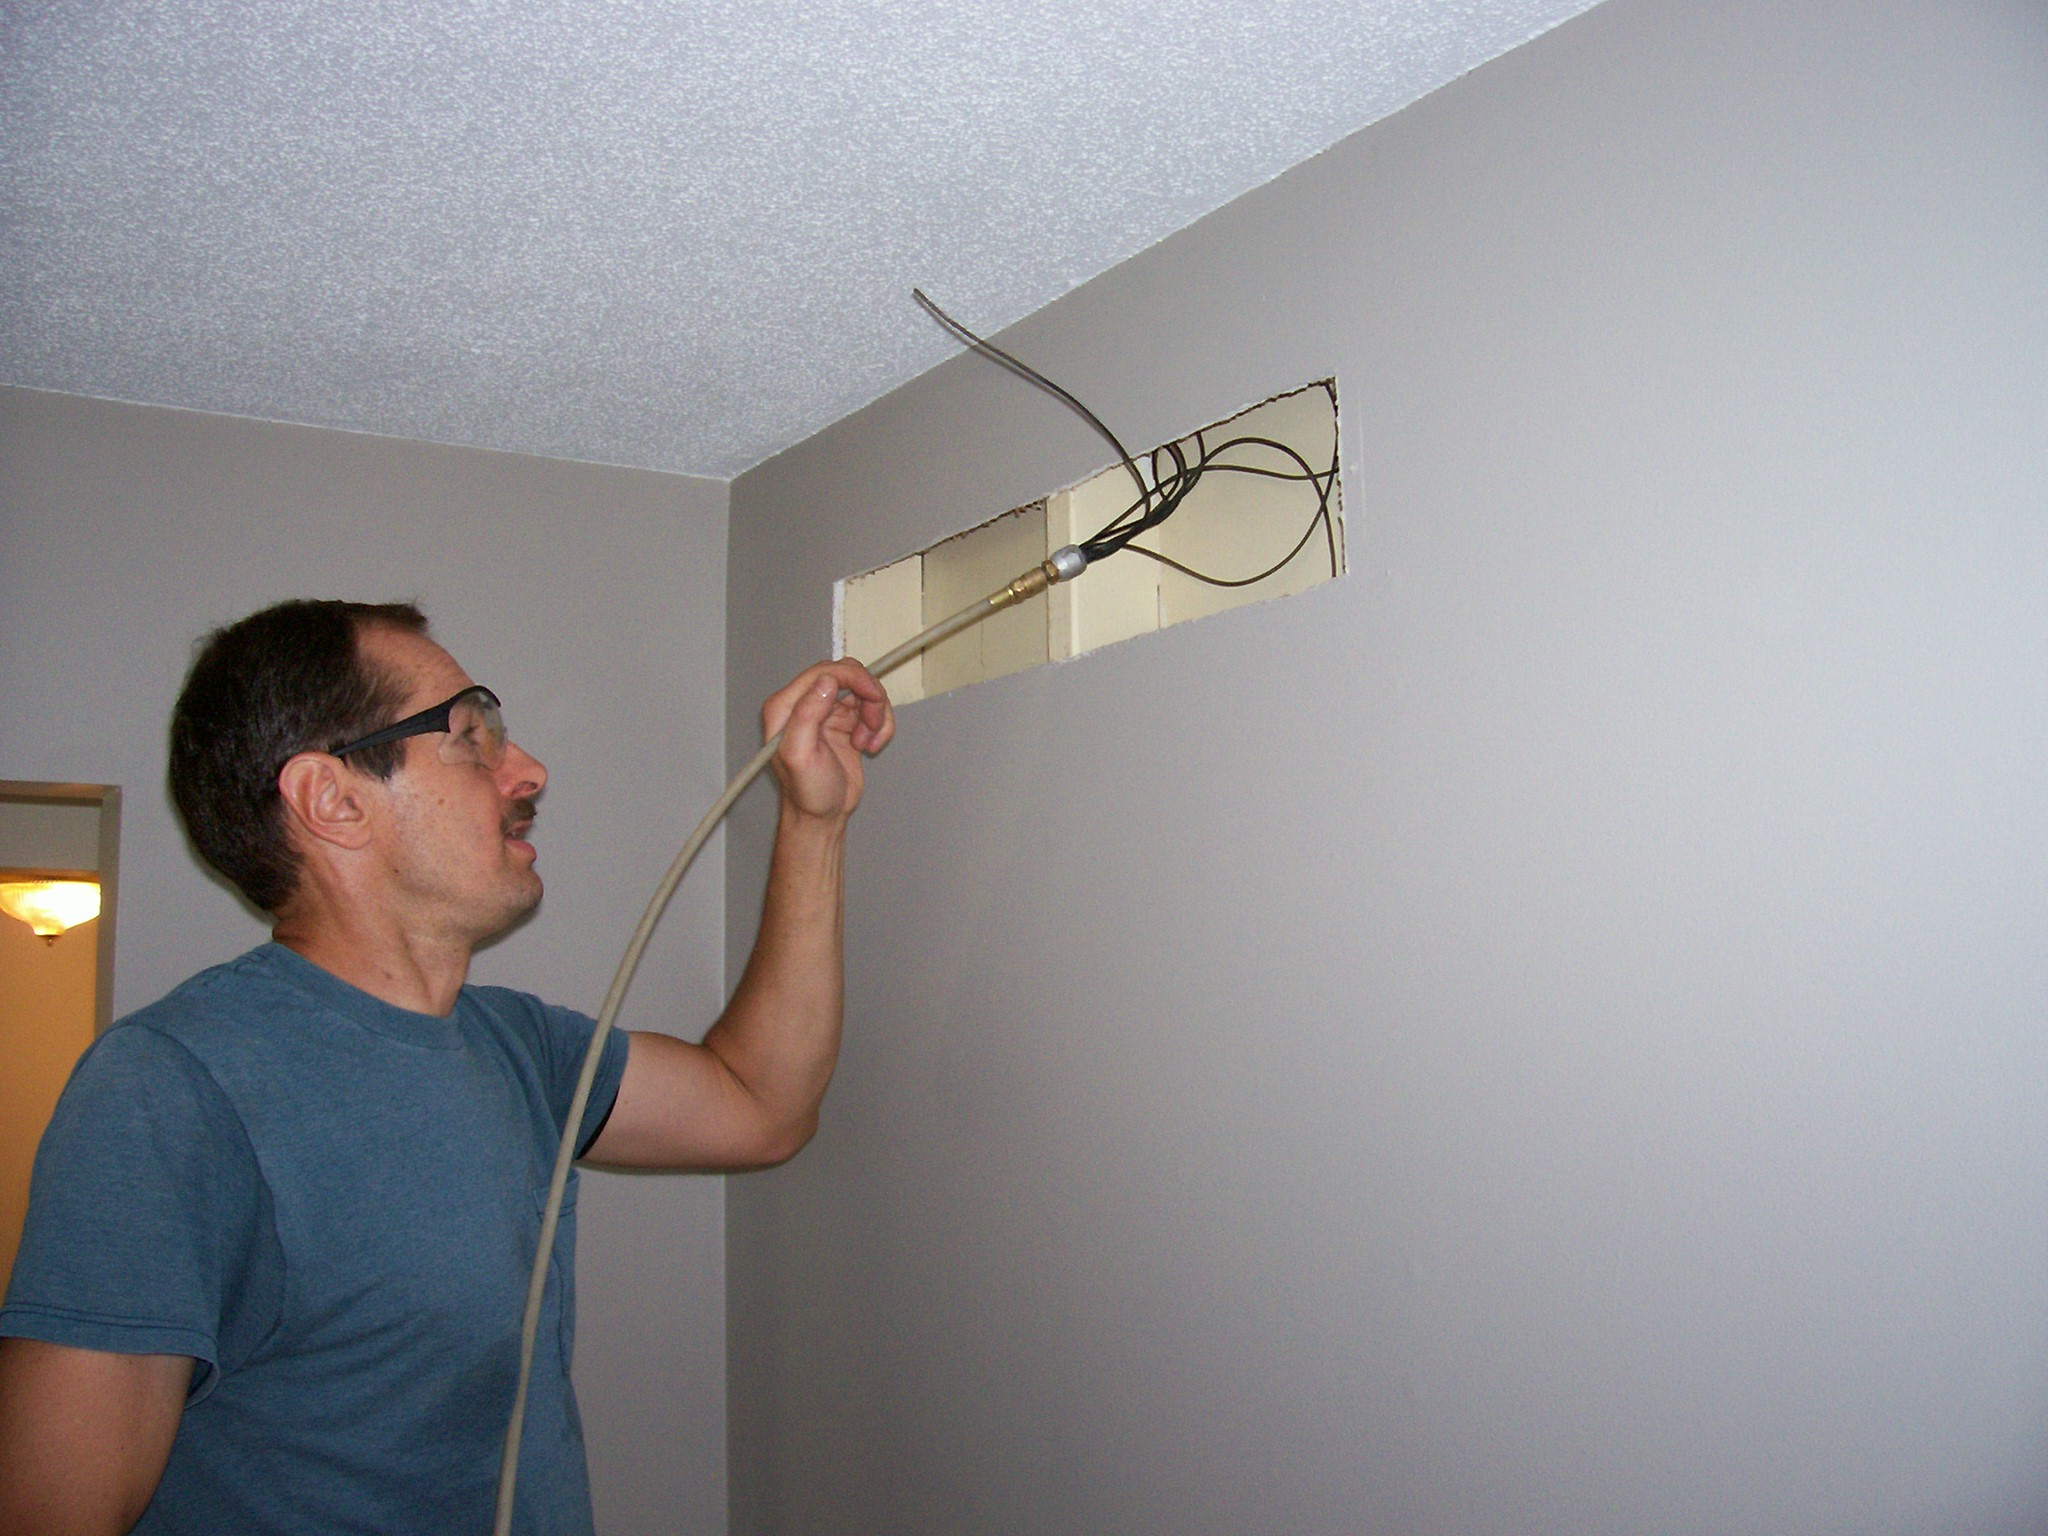 Air Duct Cleaning Modern Chimney Amp Duct Cleaning 574 457